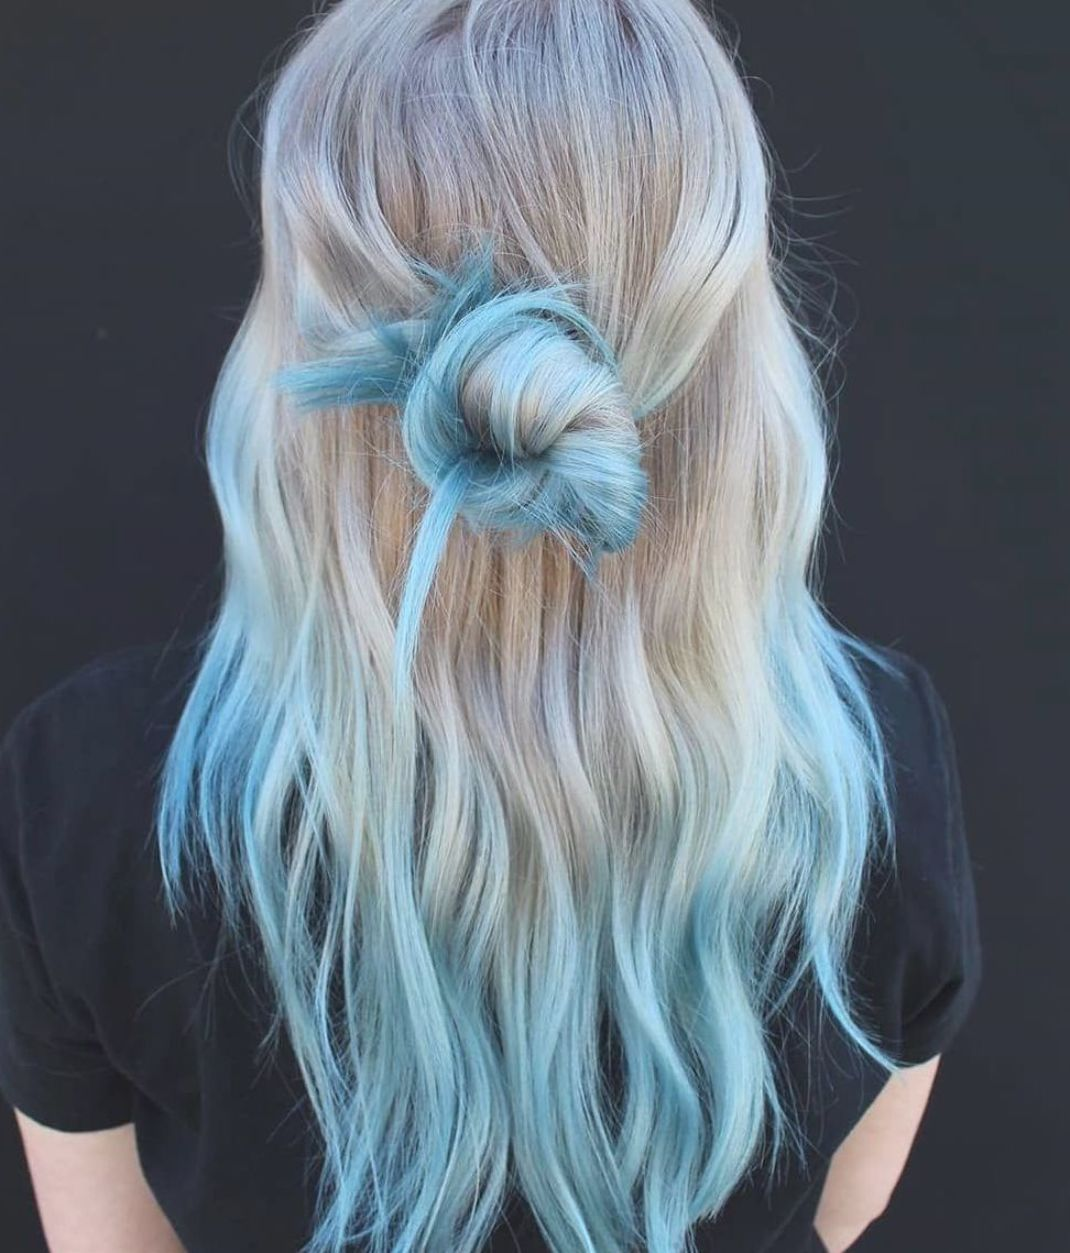 30 Cool Hair Colors To Try In 2019 A Fashion Star In 2020 Blue Tips Hair Blonde And Blue Hair Hair Dye Tips